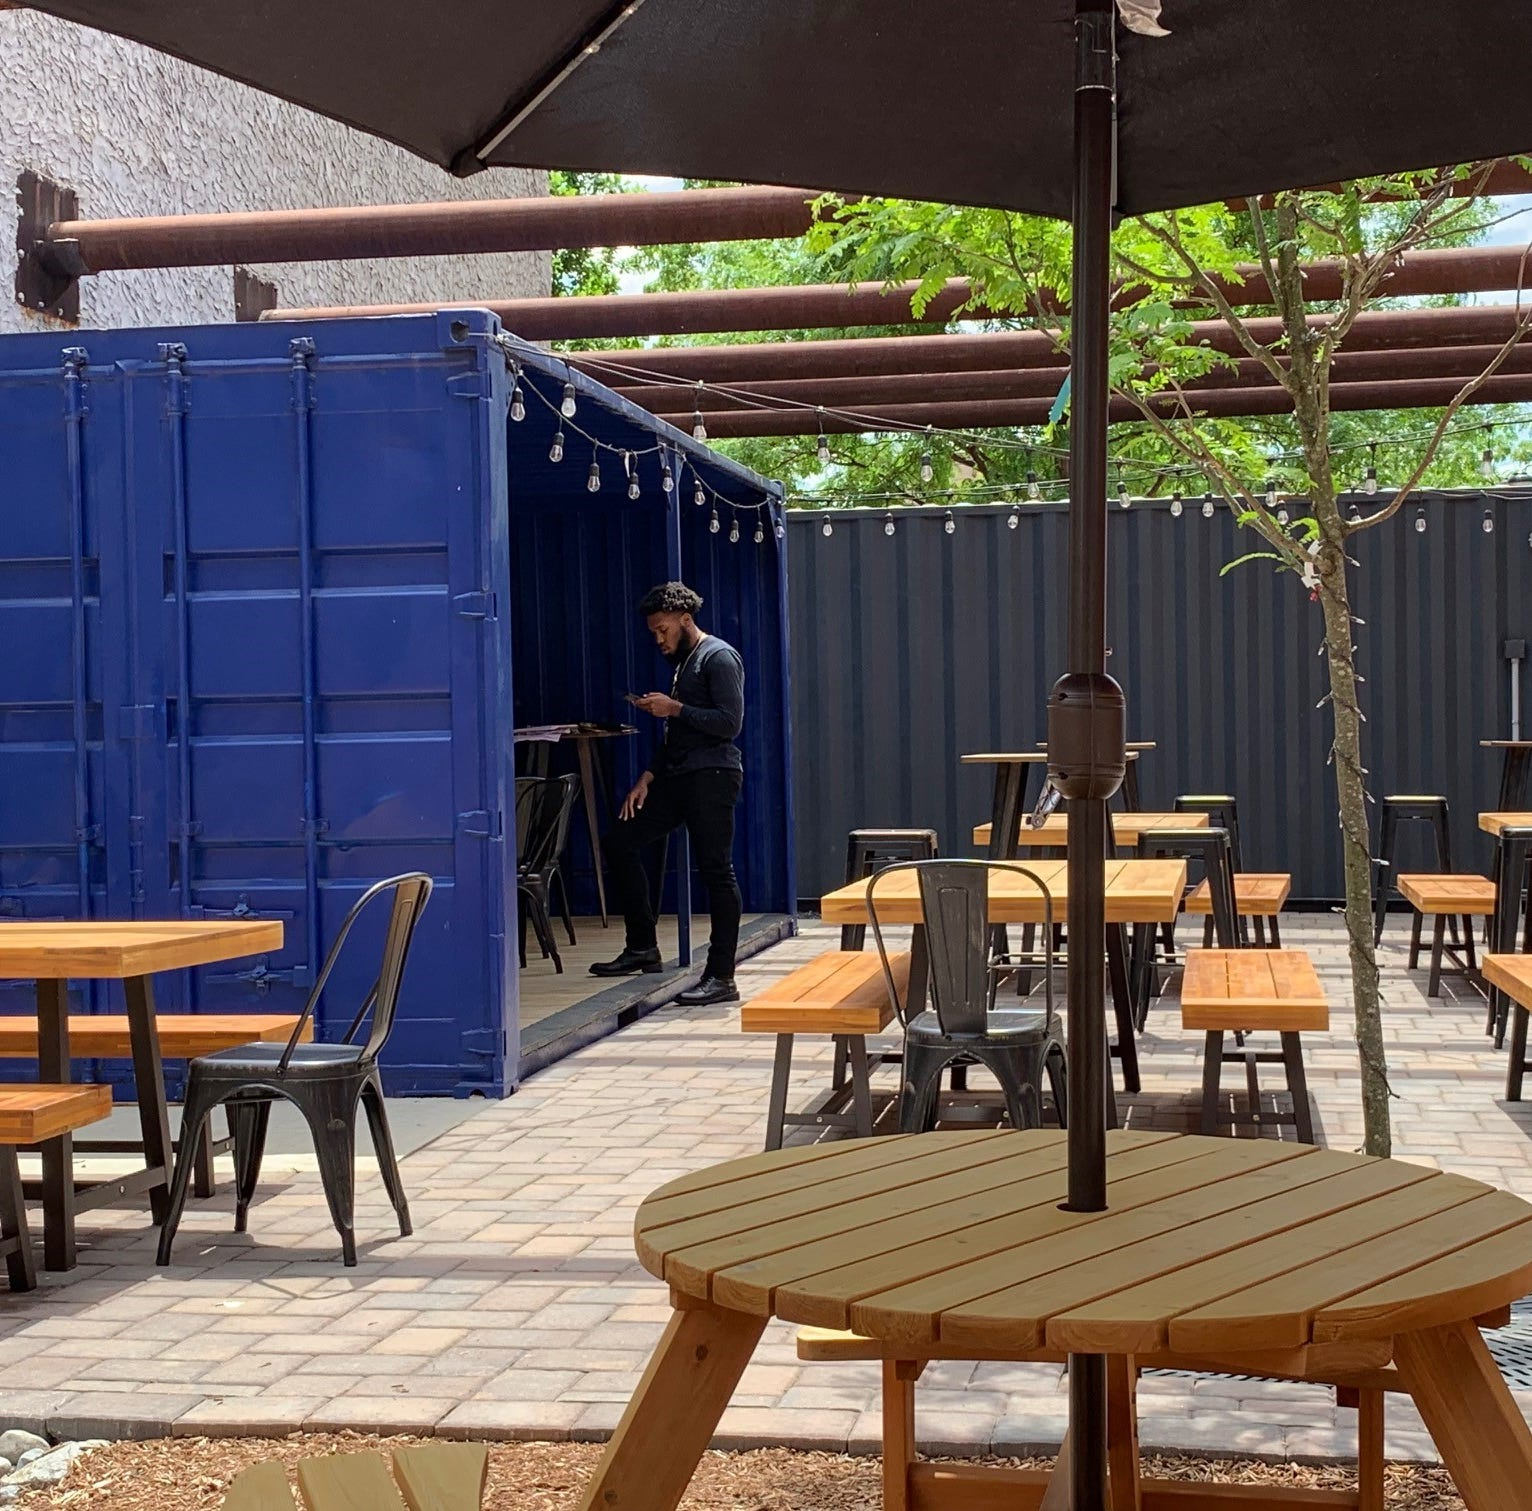 A beer garden grows in Camden: Arts Yard is open for business on Market Street